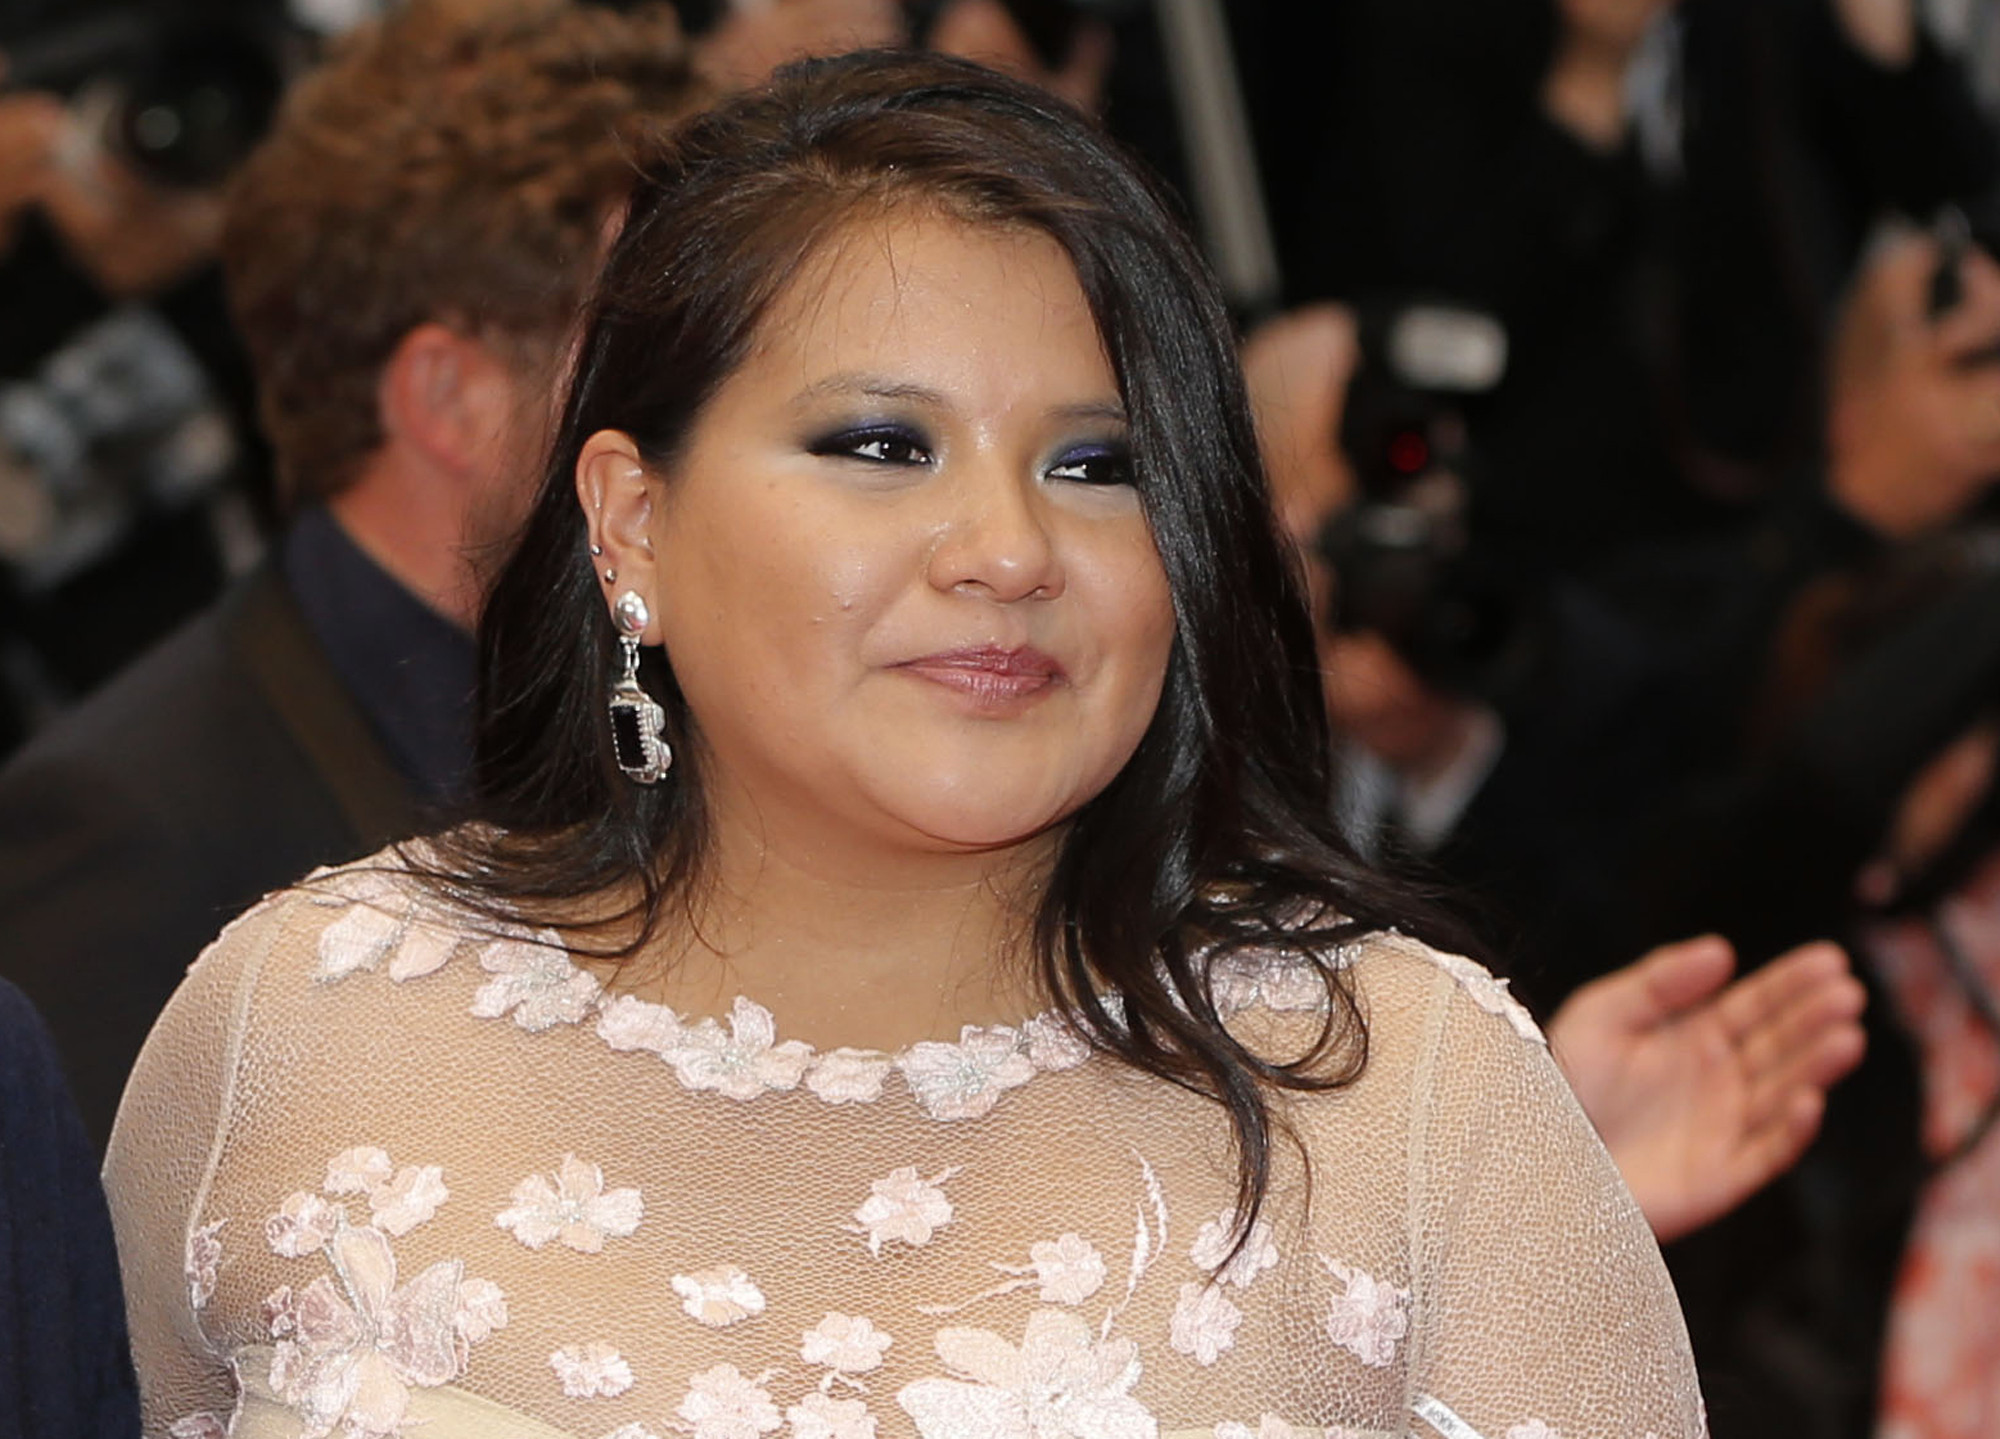 misty upham died